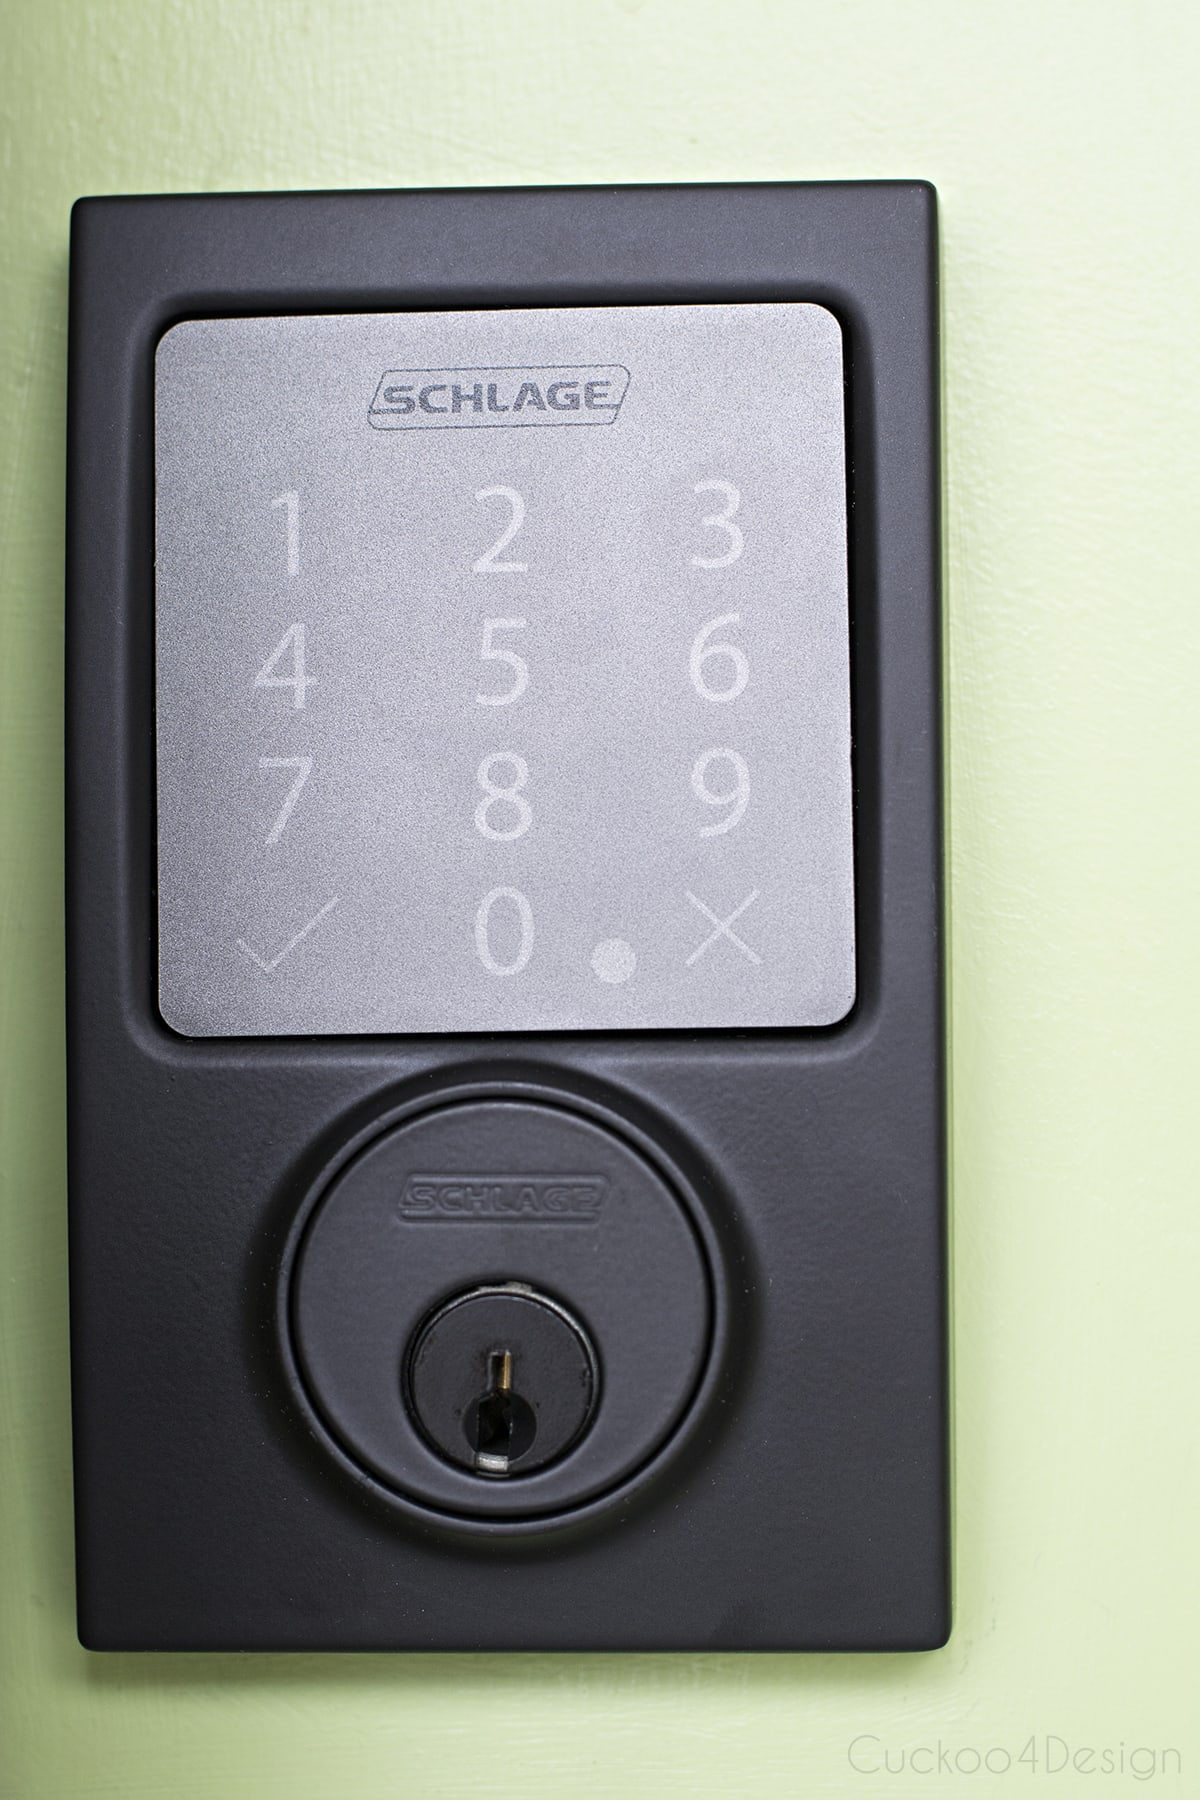 Our New Schlage Bluetooth Smart Door Lock Cuckoo4design